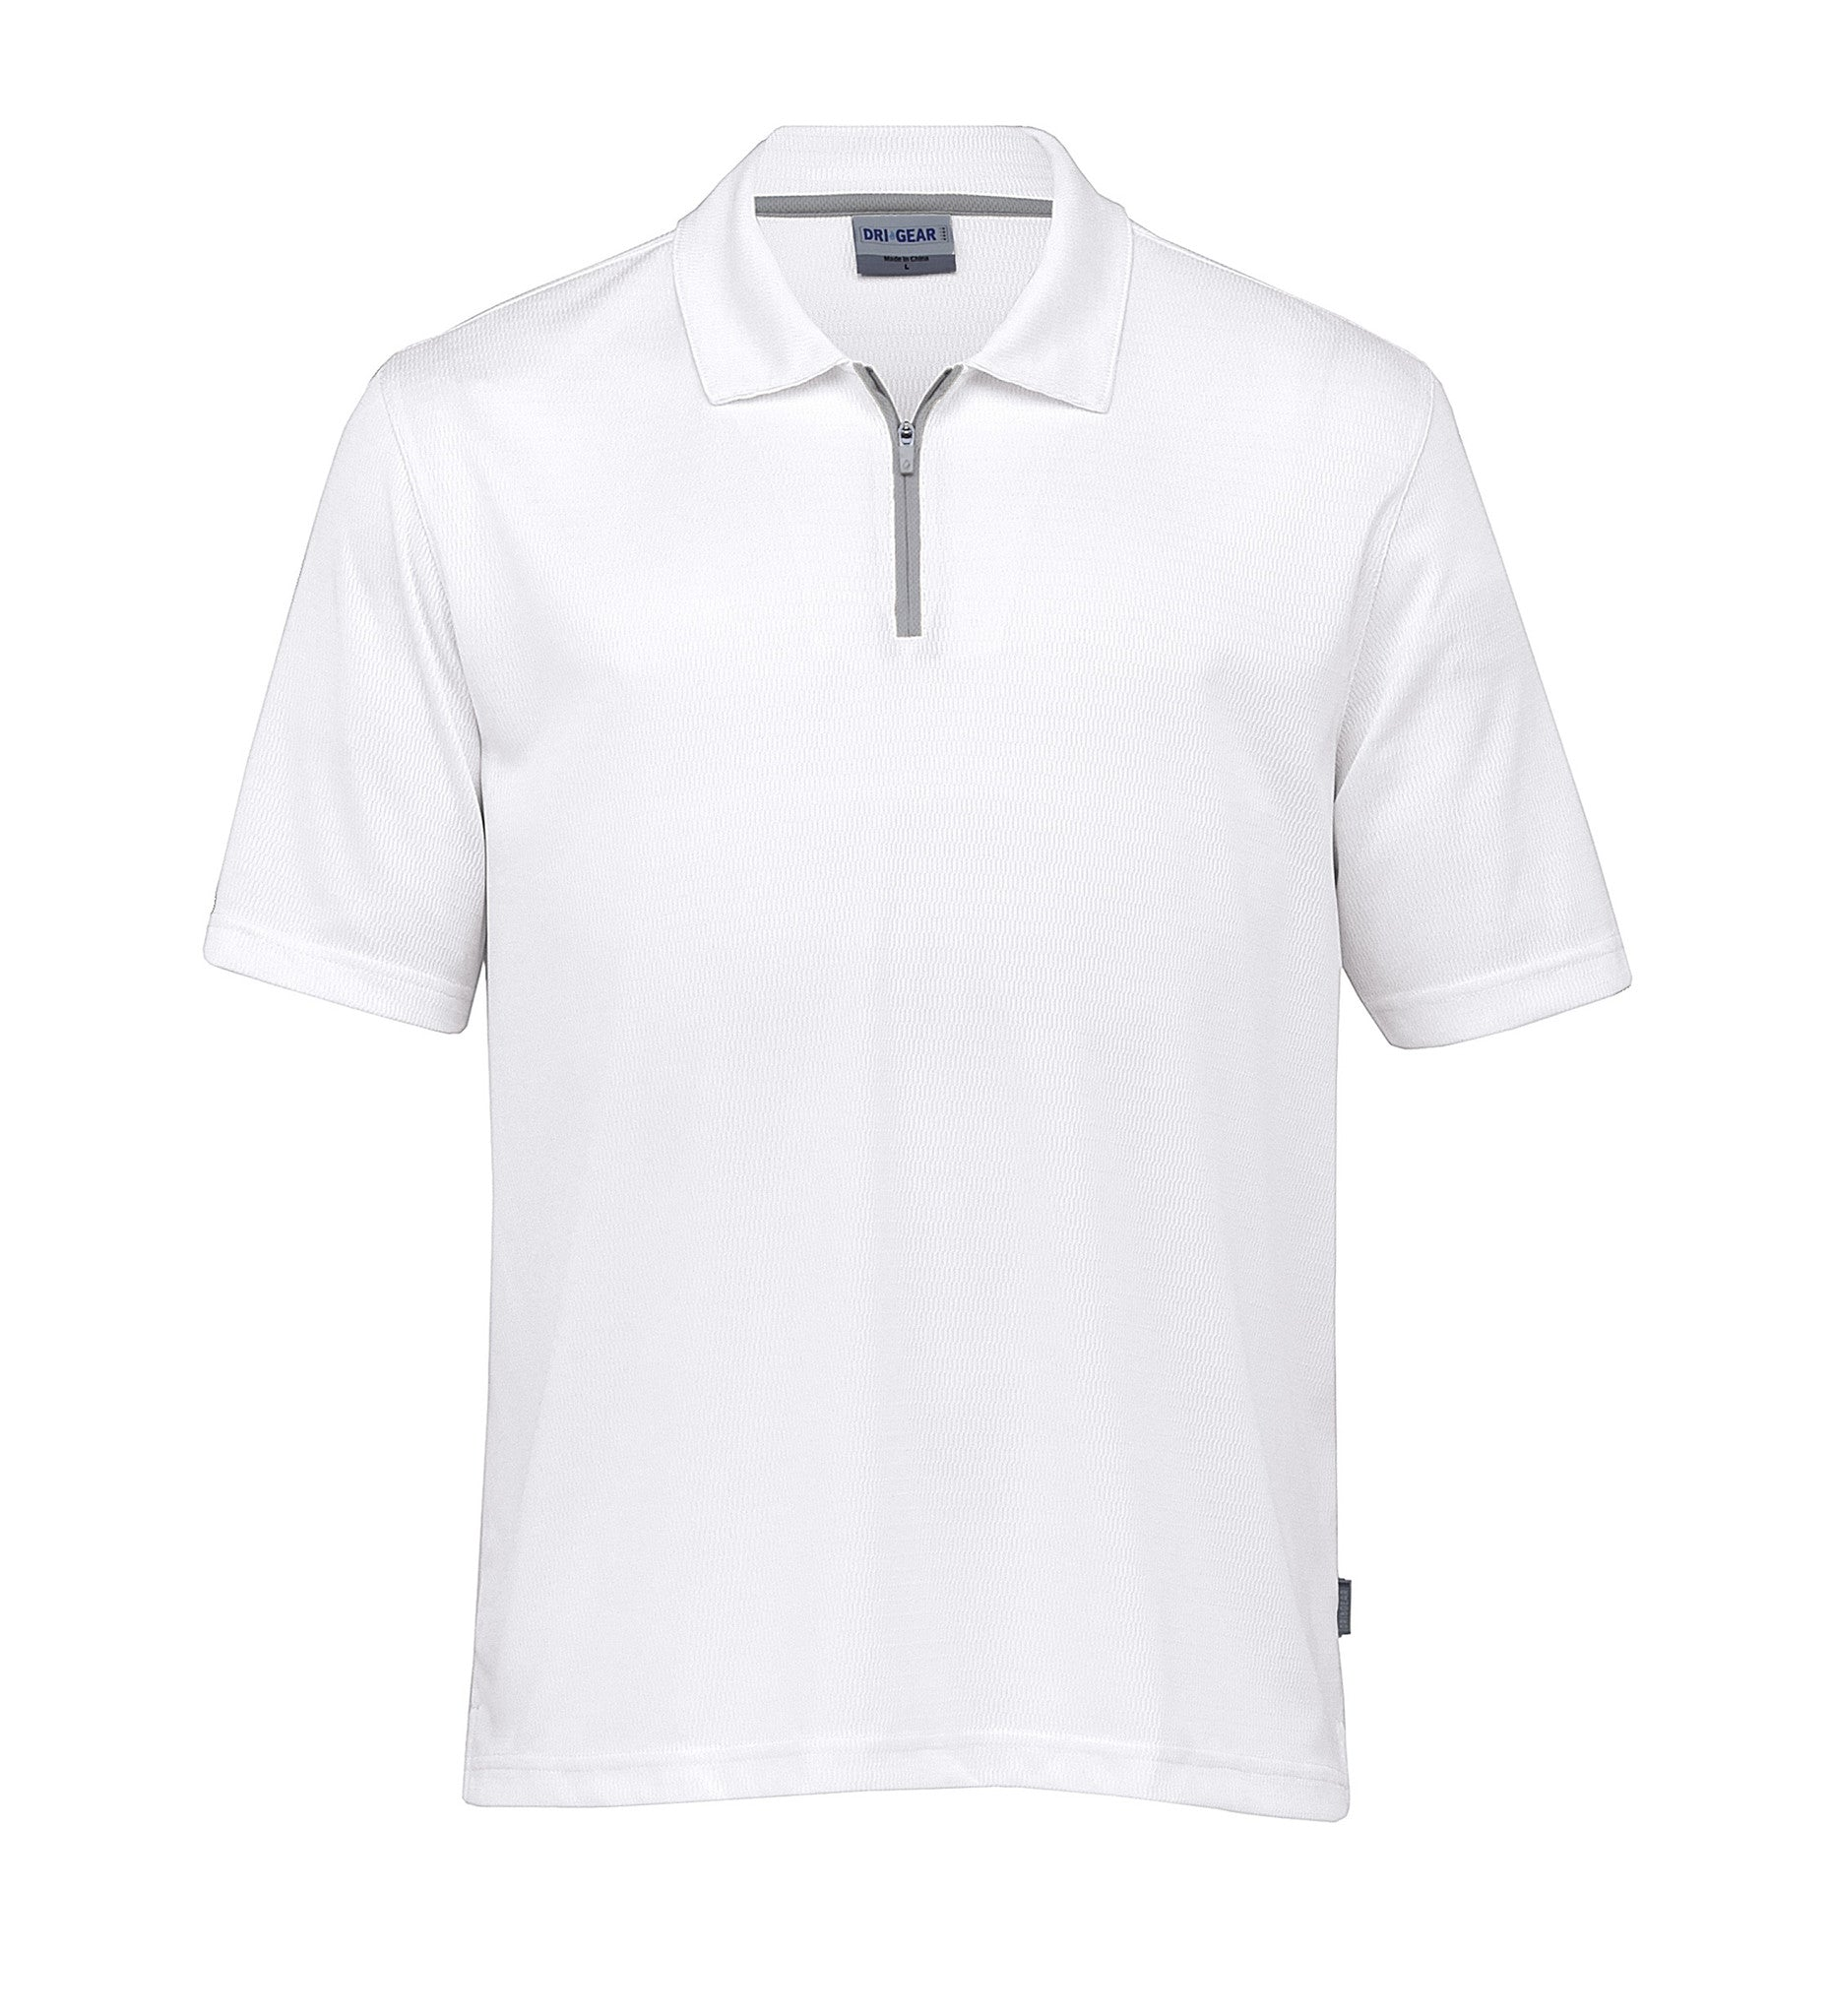 Gear For Life-Gear For Life Gents Dri Gear Trimmed Polo--Corporate Apparel Online - 1